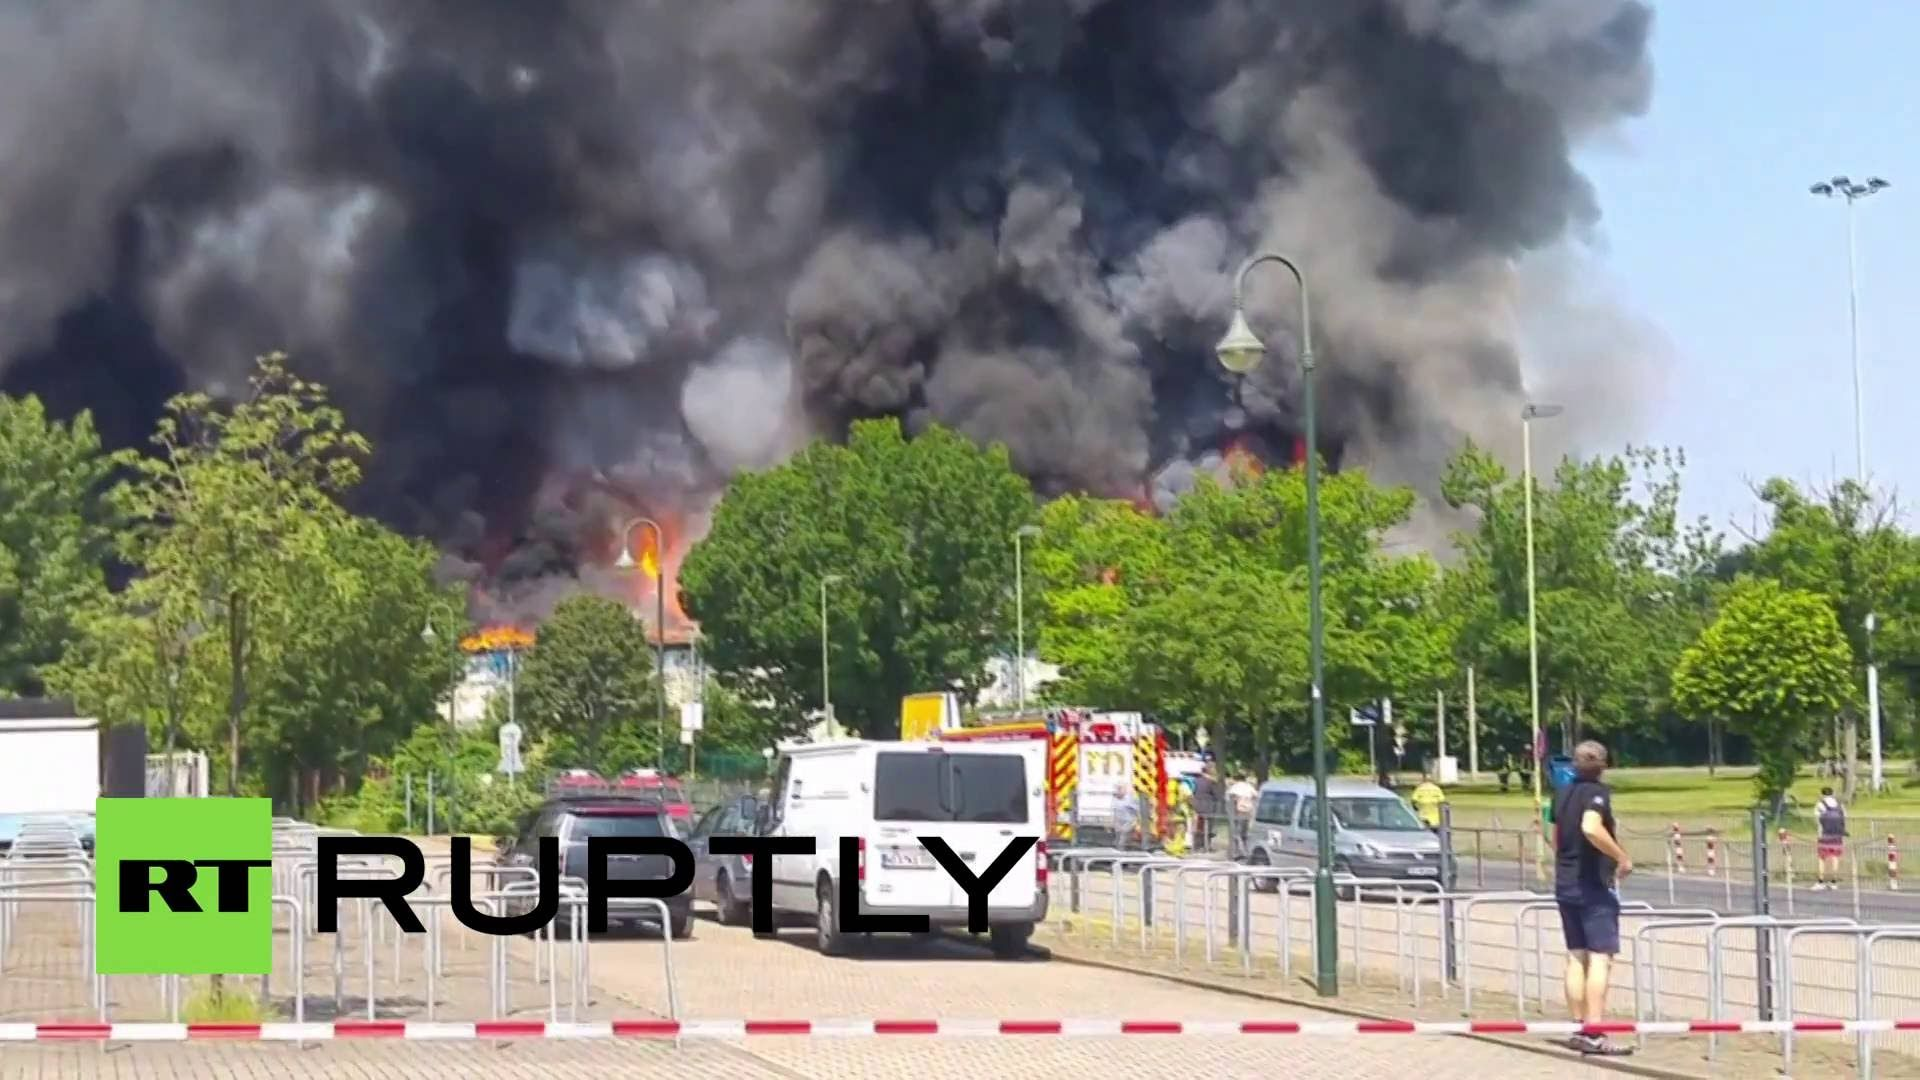 Huge fire rips through refugee camp in Germany, over 70 firefighters on ...